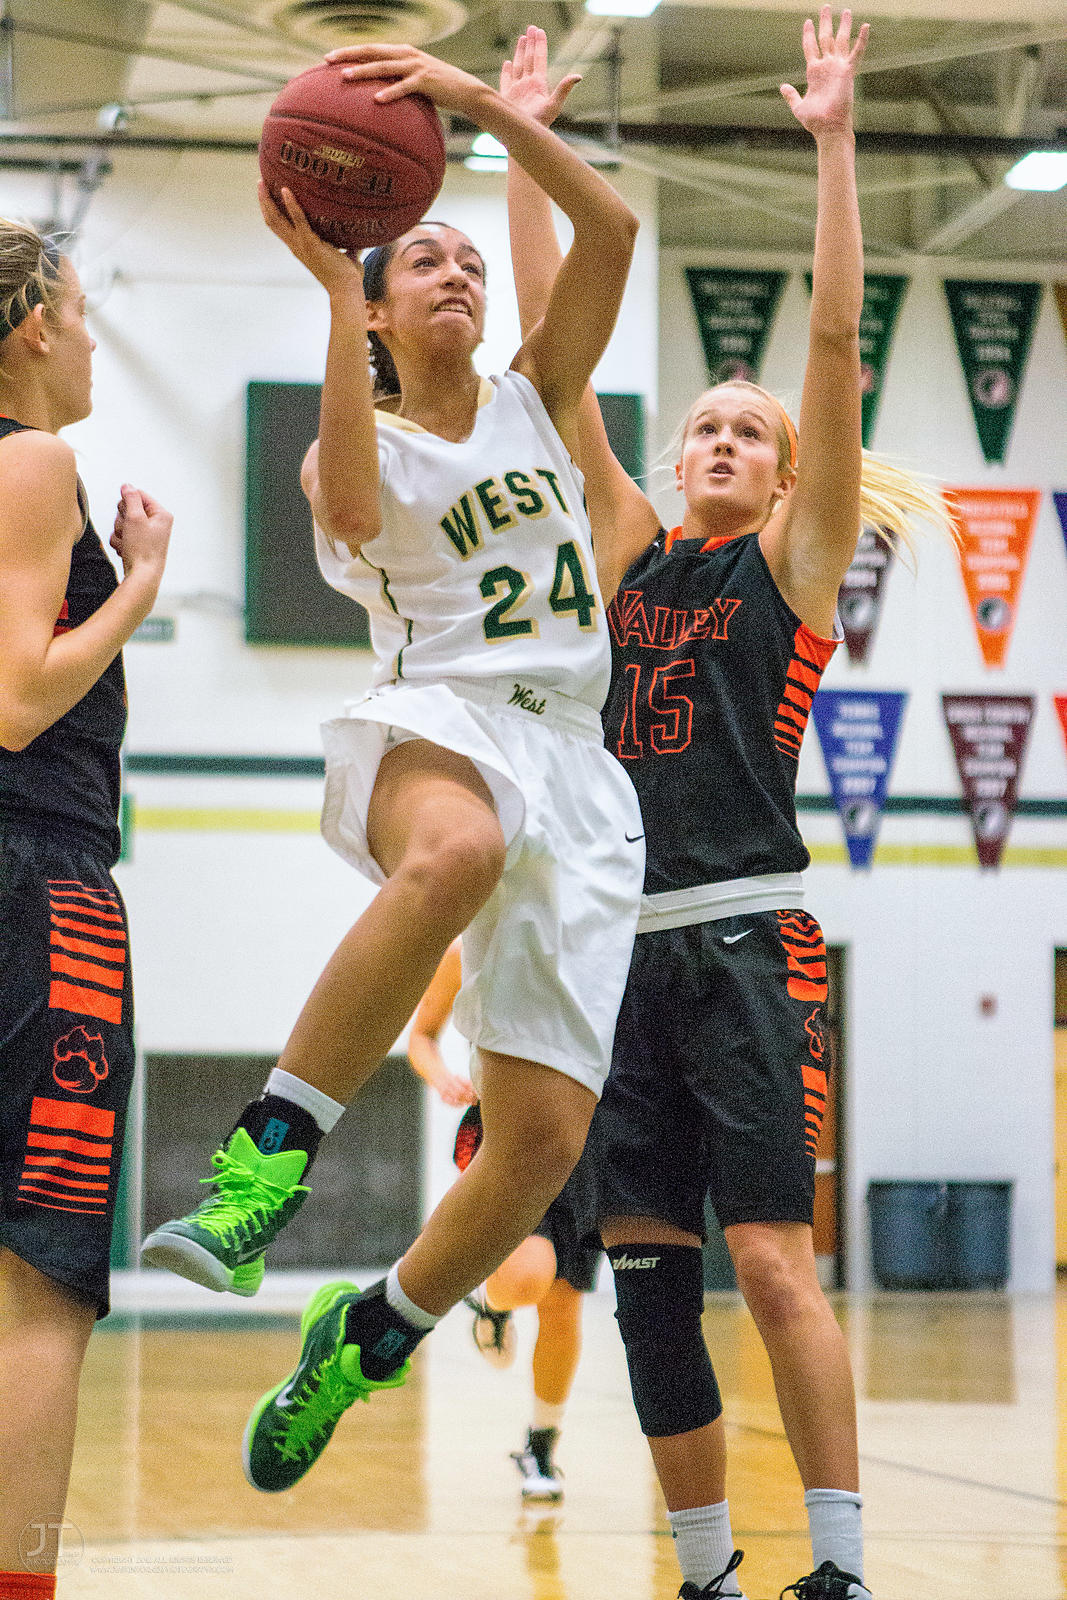 Girl's Prep Basketball, Iowa City West vs West Des Moines Valley, January 24, 2015